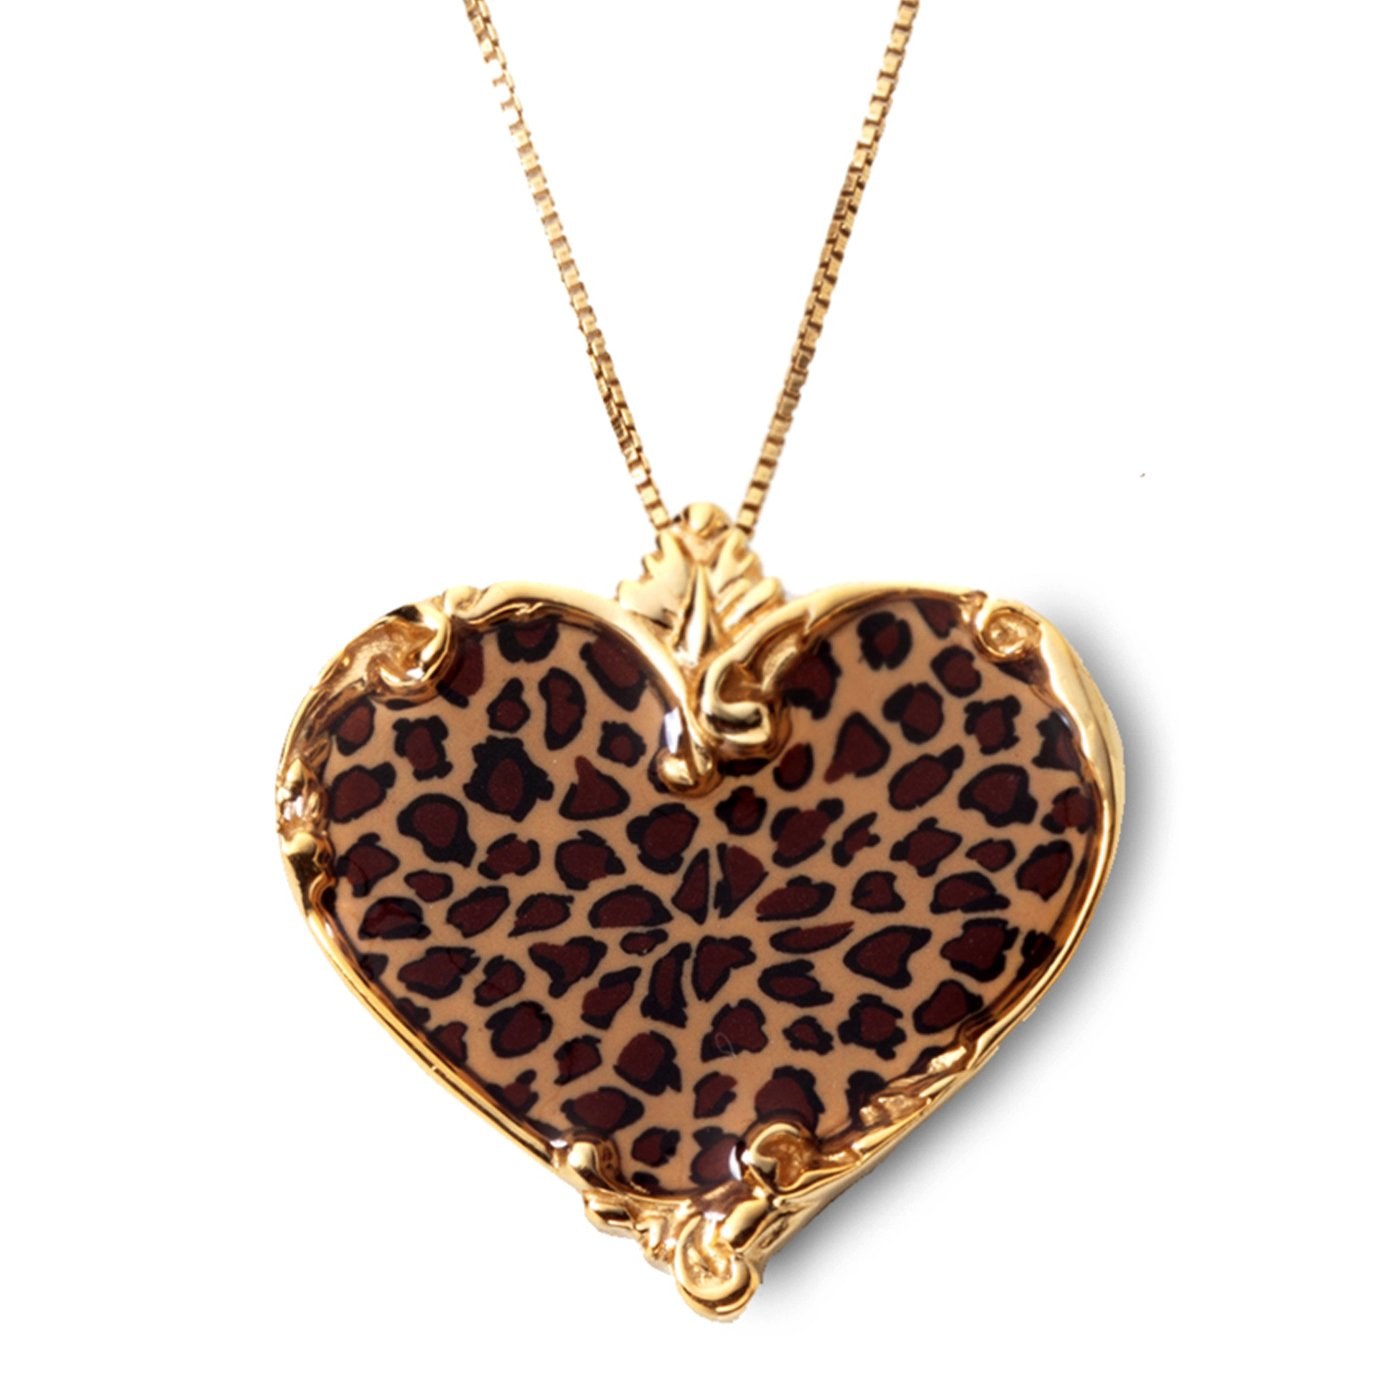 Gold Plated Sterling Silver Heart Necklace Pendant Handmade Leopard Print Polymer Clay Jewelry, 16.5'' Gold Filled Chain